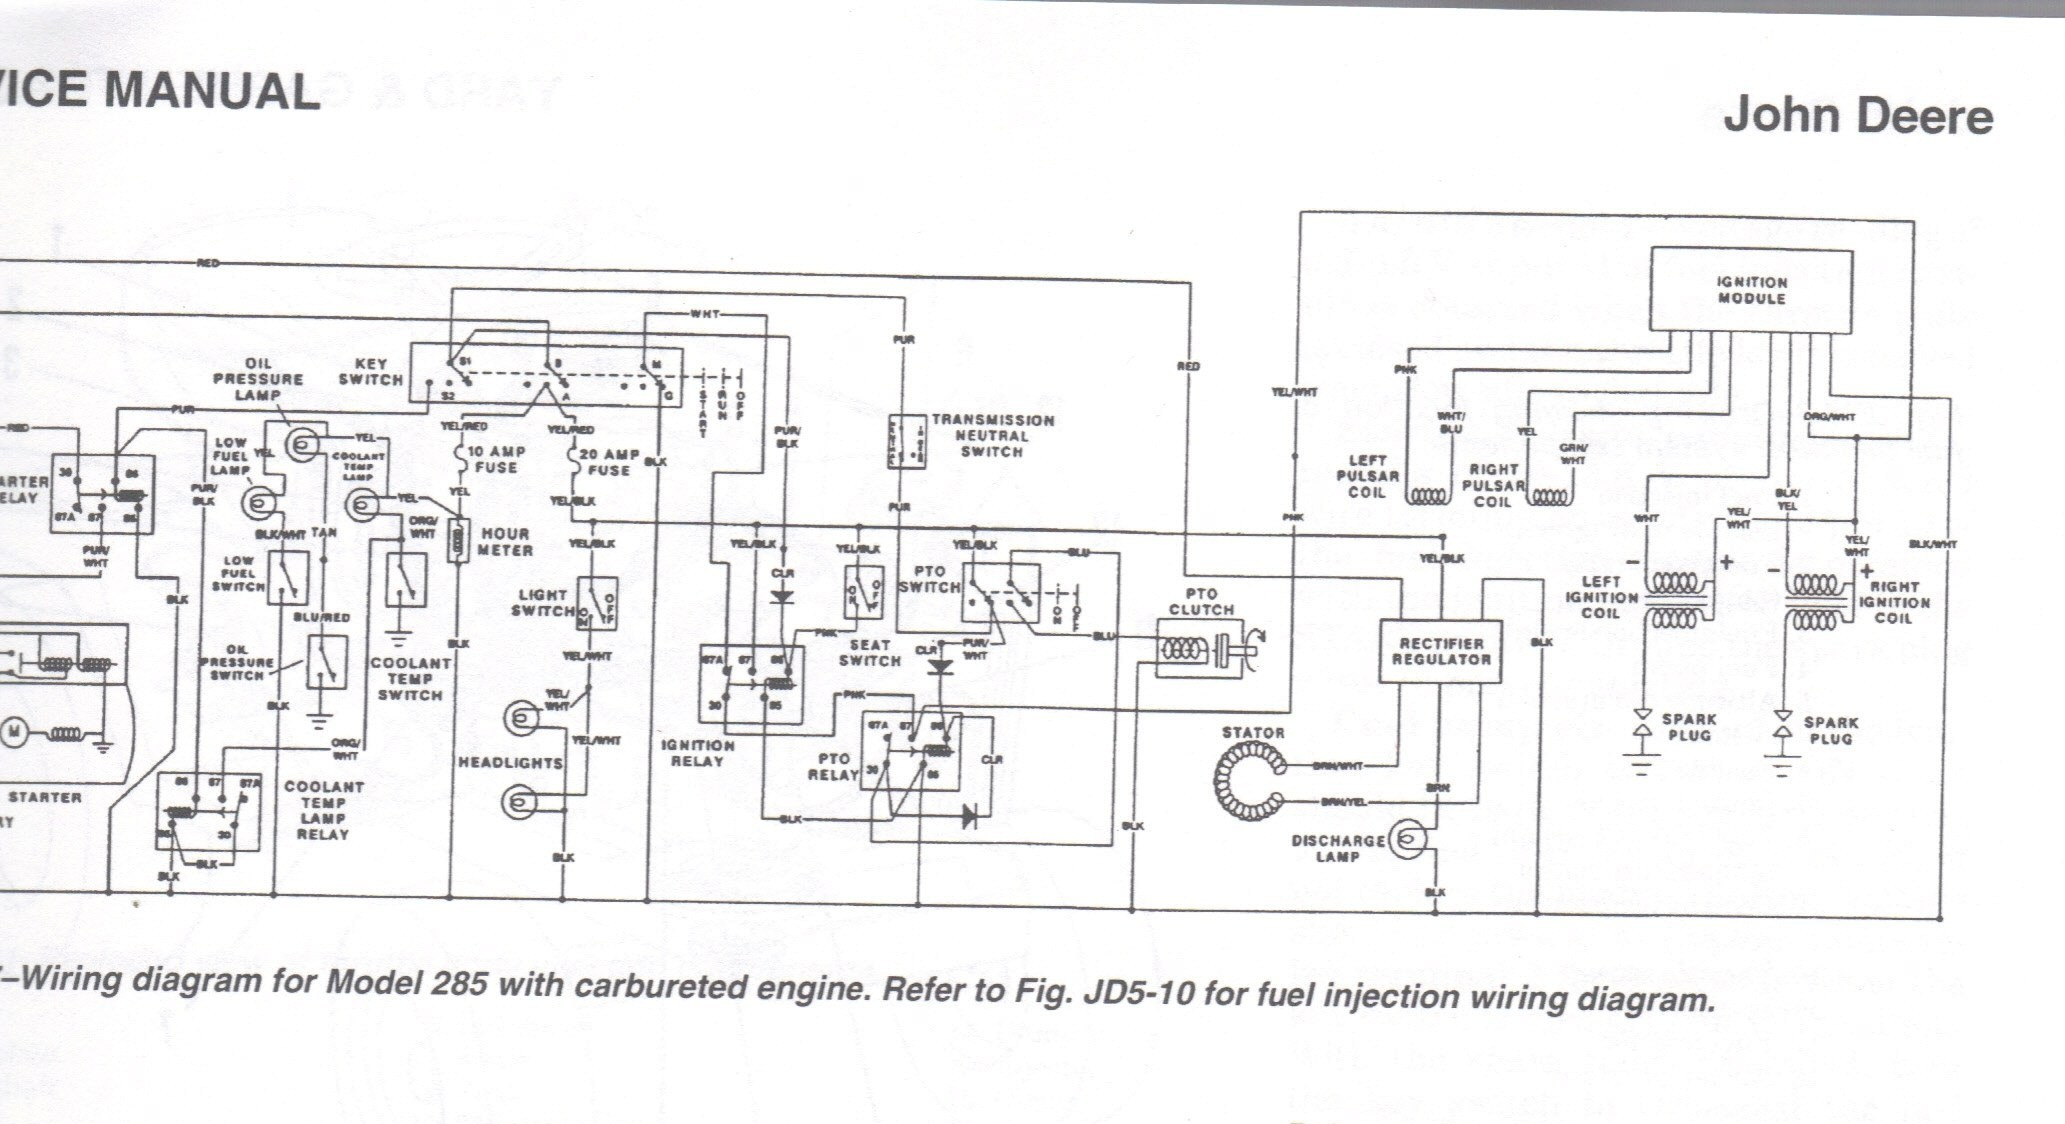 A2 Wiring Diagram Data Kawasaki 1982 Ltd 1000 Audi Fuse Box Layout Library K5